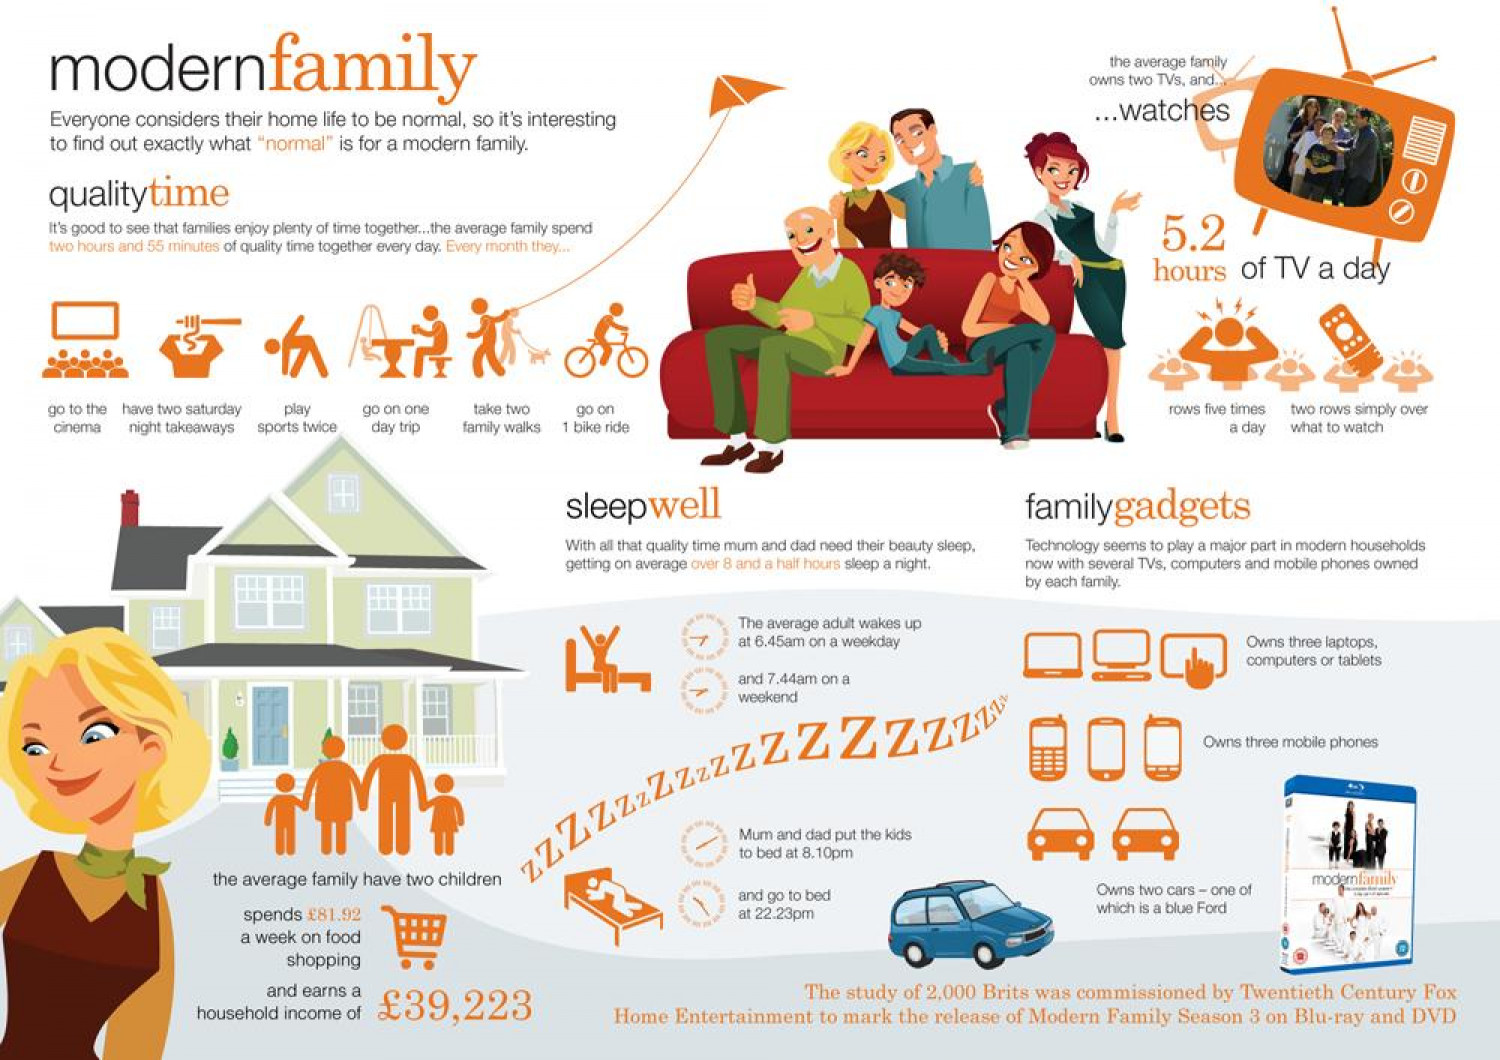 The Modern Family- 5 hours of TV and 3 hours of quality time Infographic